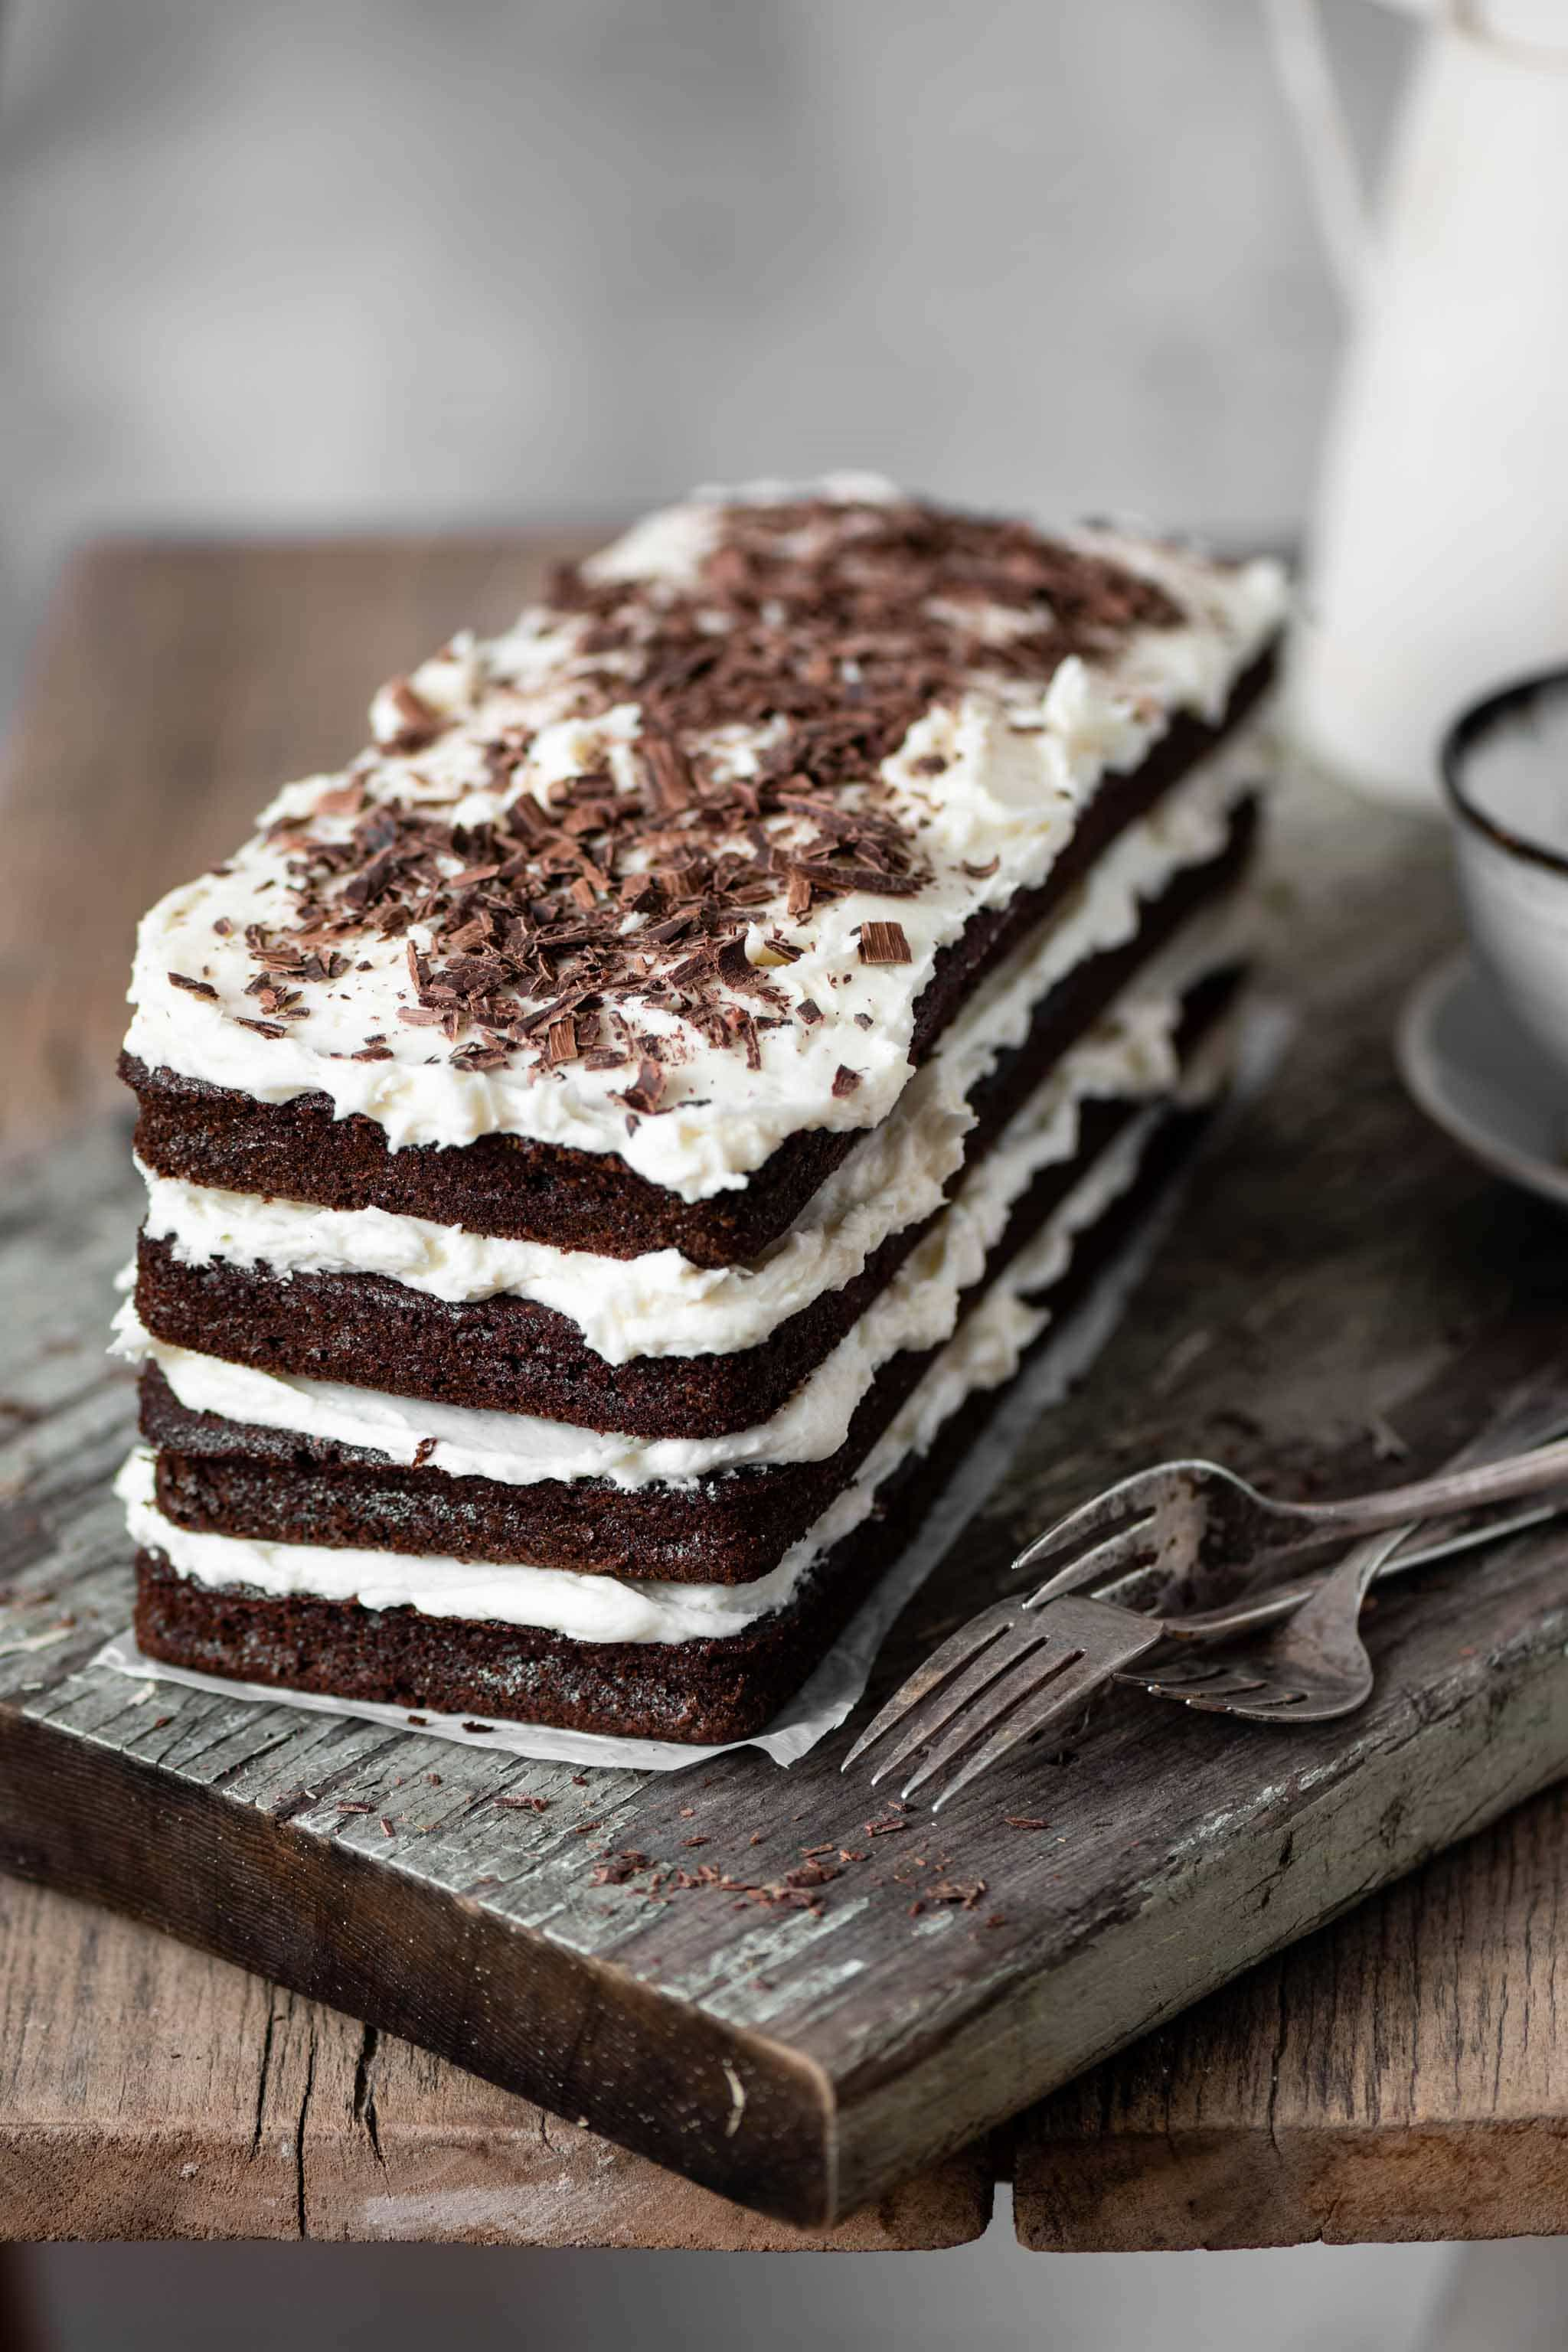 Chocolate Layer Cake made with coffee and vanilla.